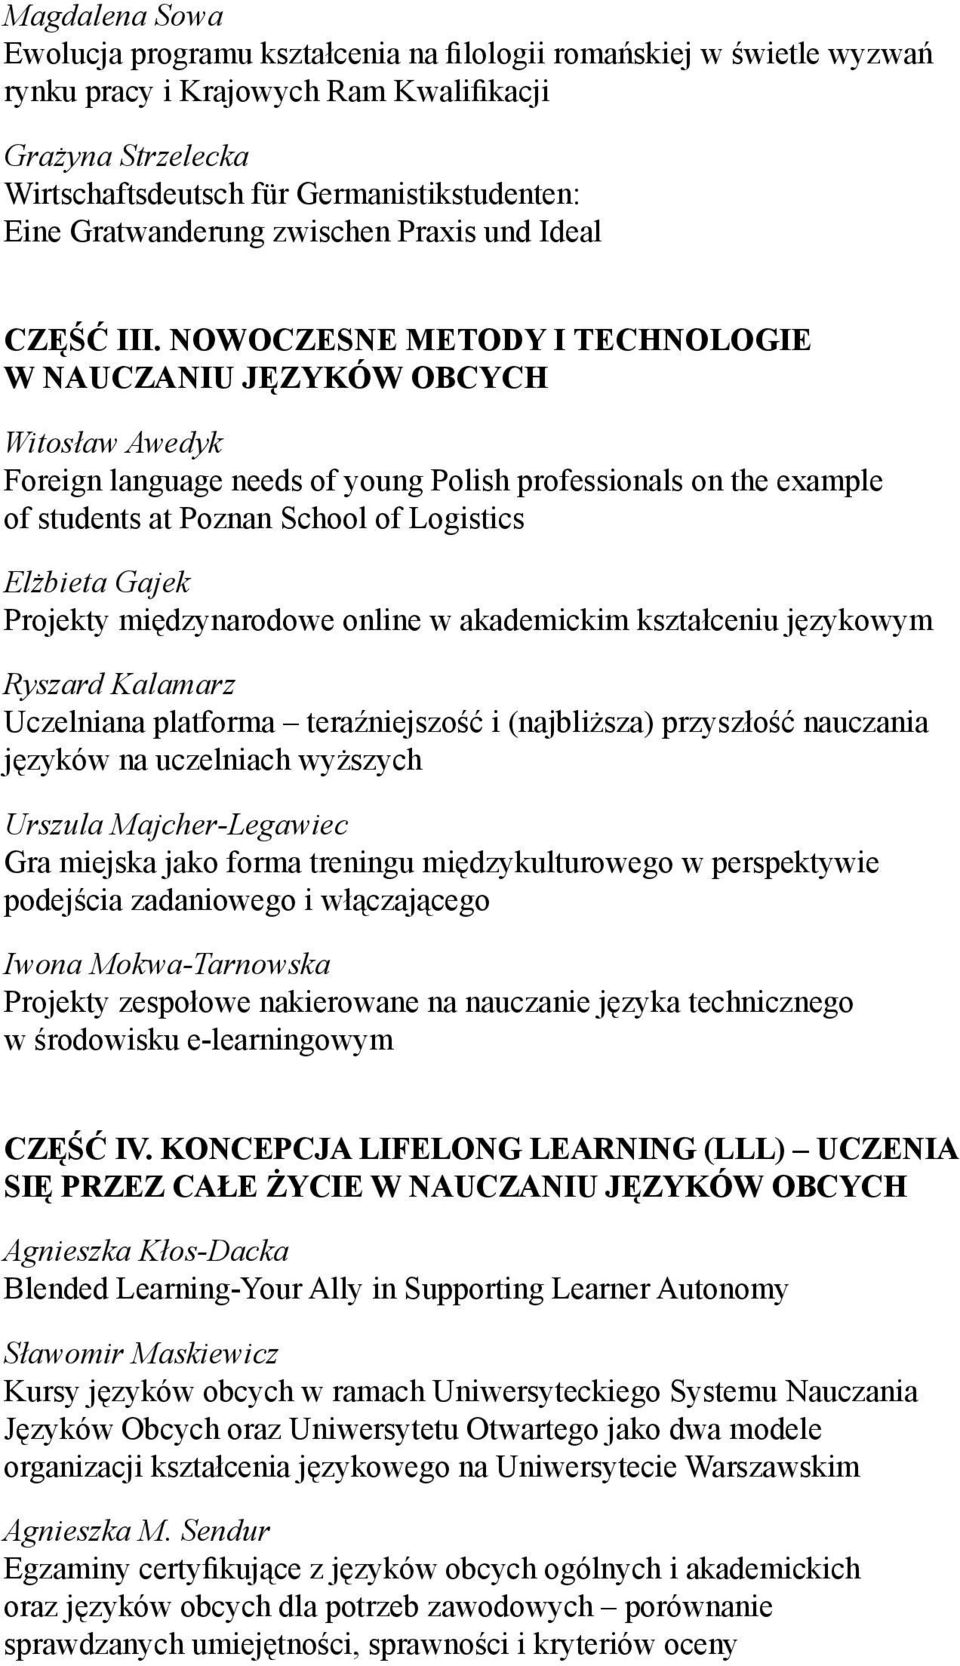 NOWOCZESNE METODY I TECHNOLOGIE W NAUCZANIU JĘZYKÓW OBCYCH Witosław Awedyk Foreign language needs of young Polish professionals on the example of students at Poznan School of Logistics Elżbieta Gajek